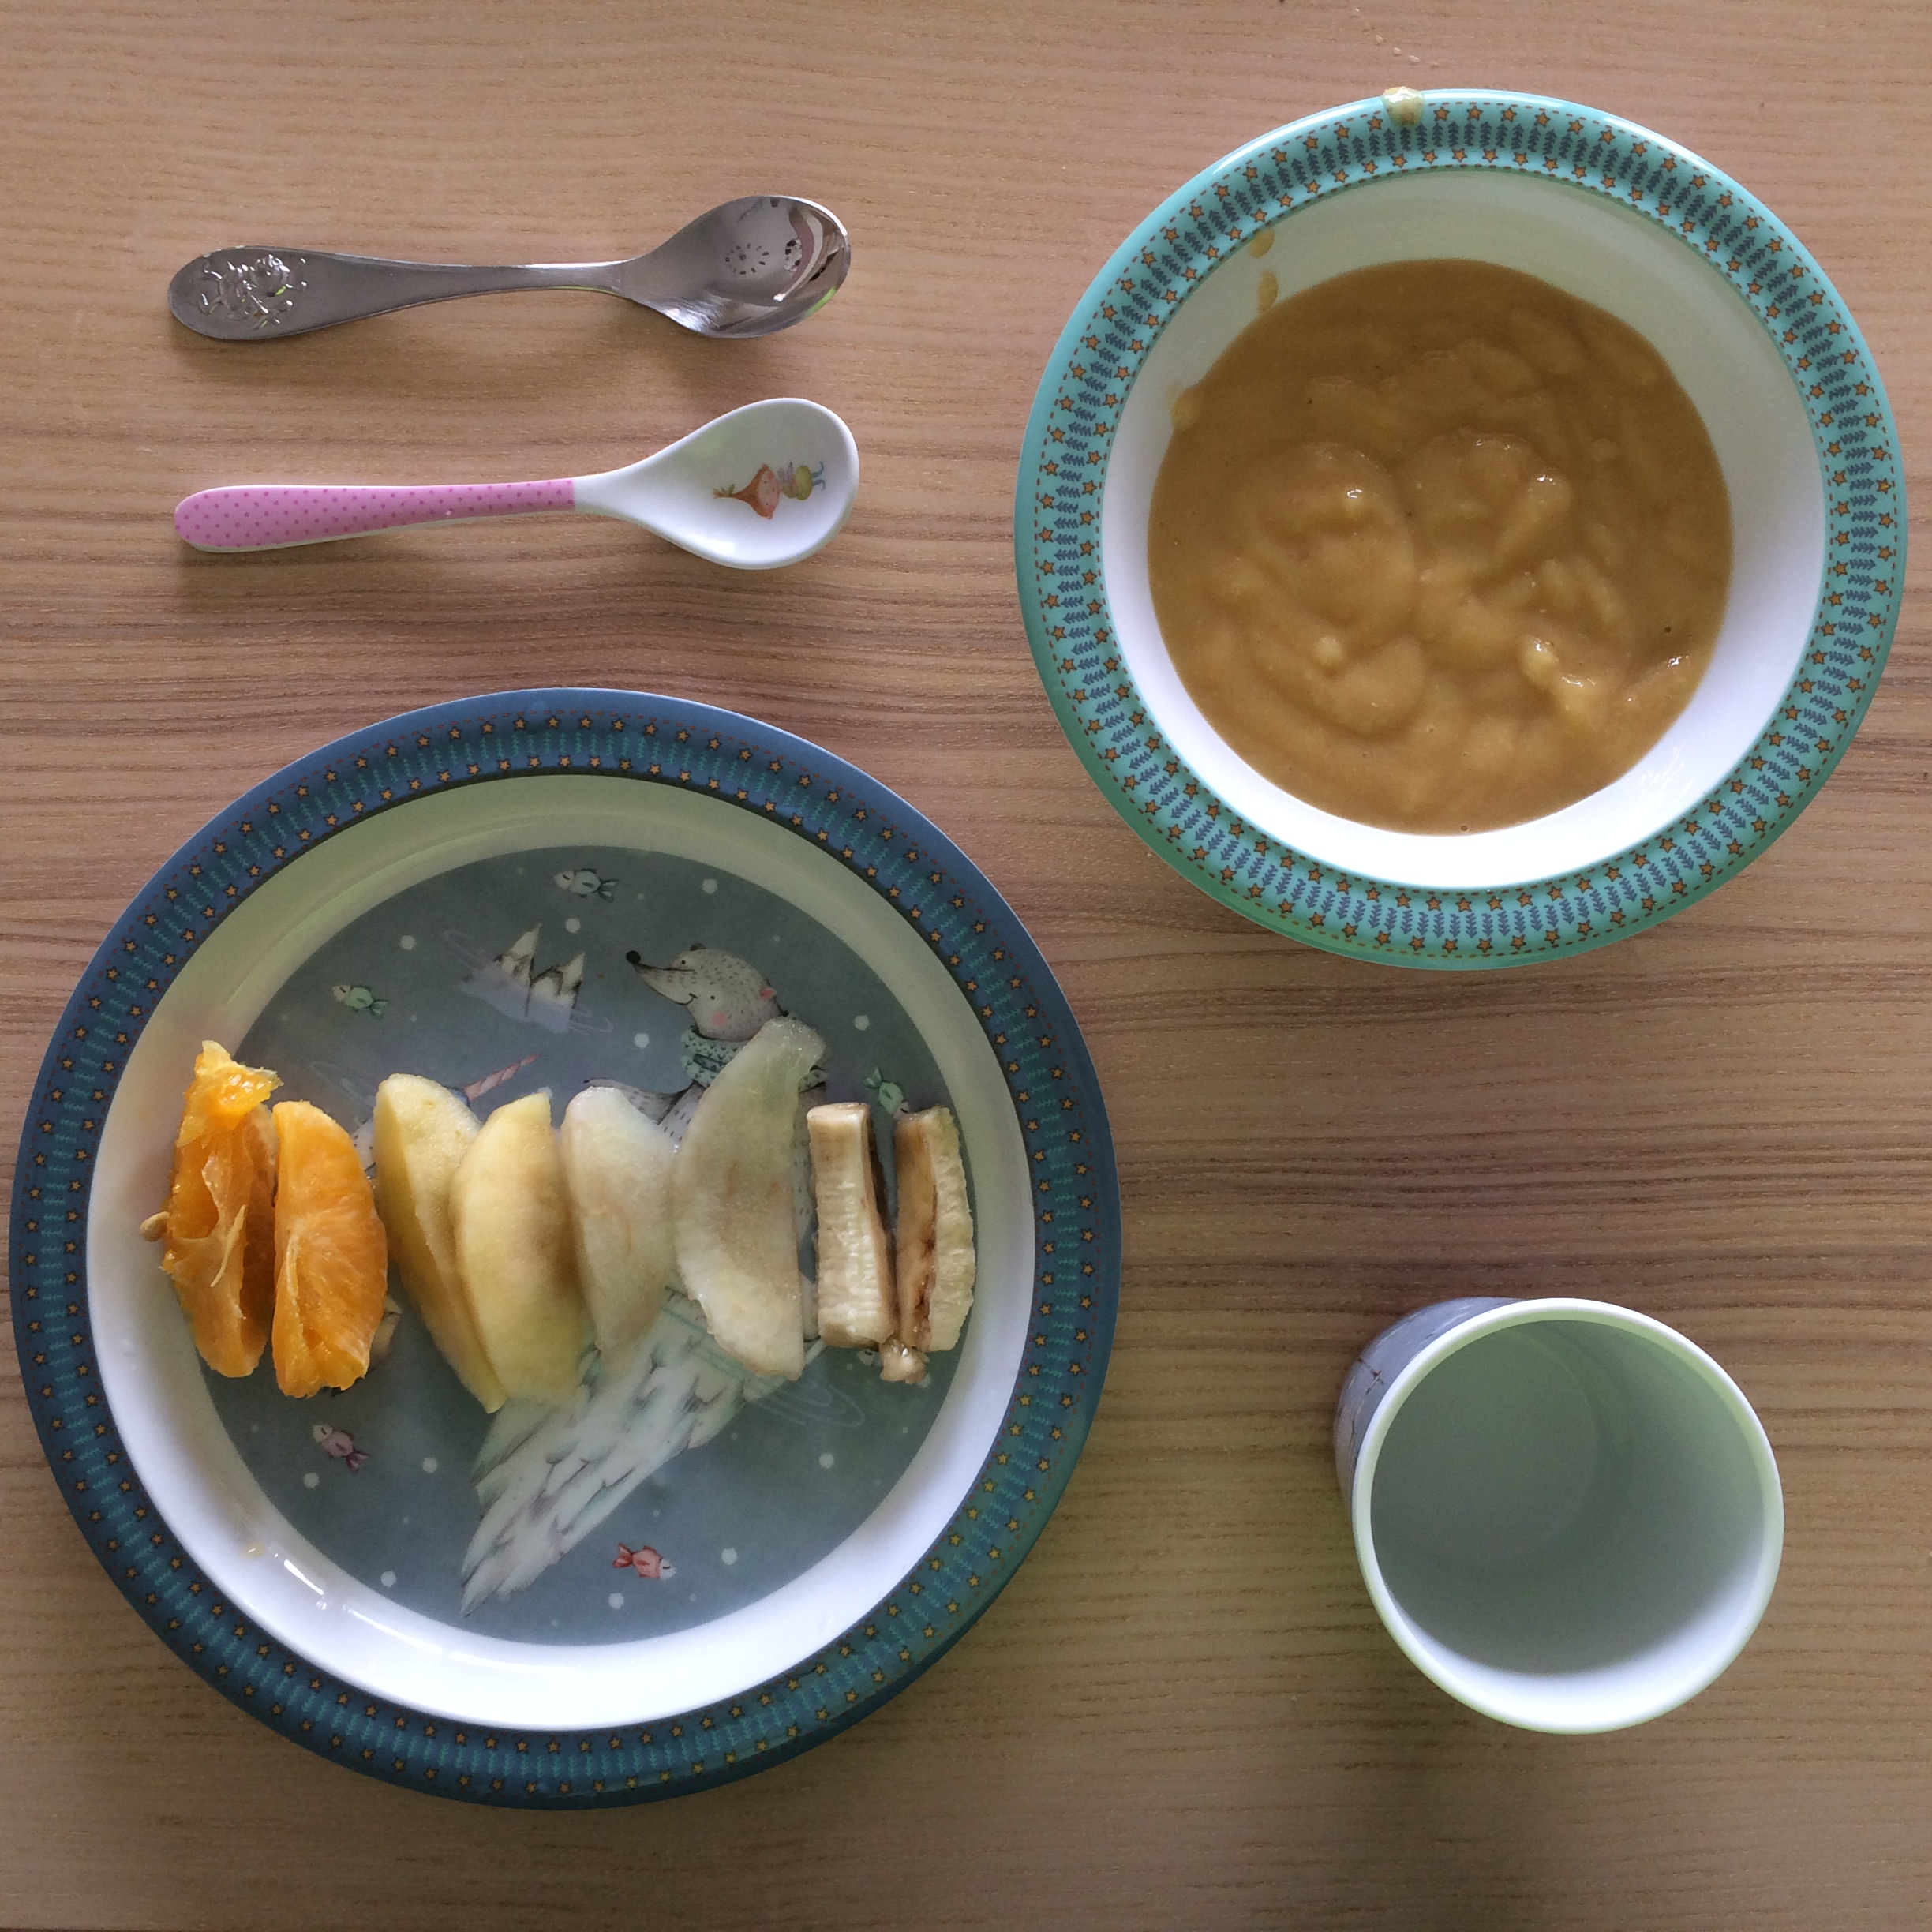 Baby Led Weaning mixto frutas y puré